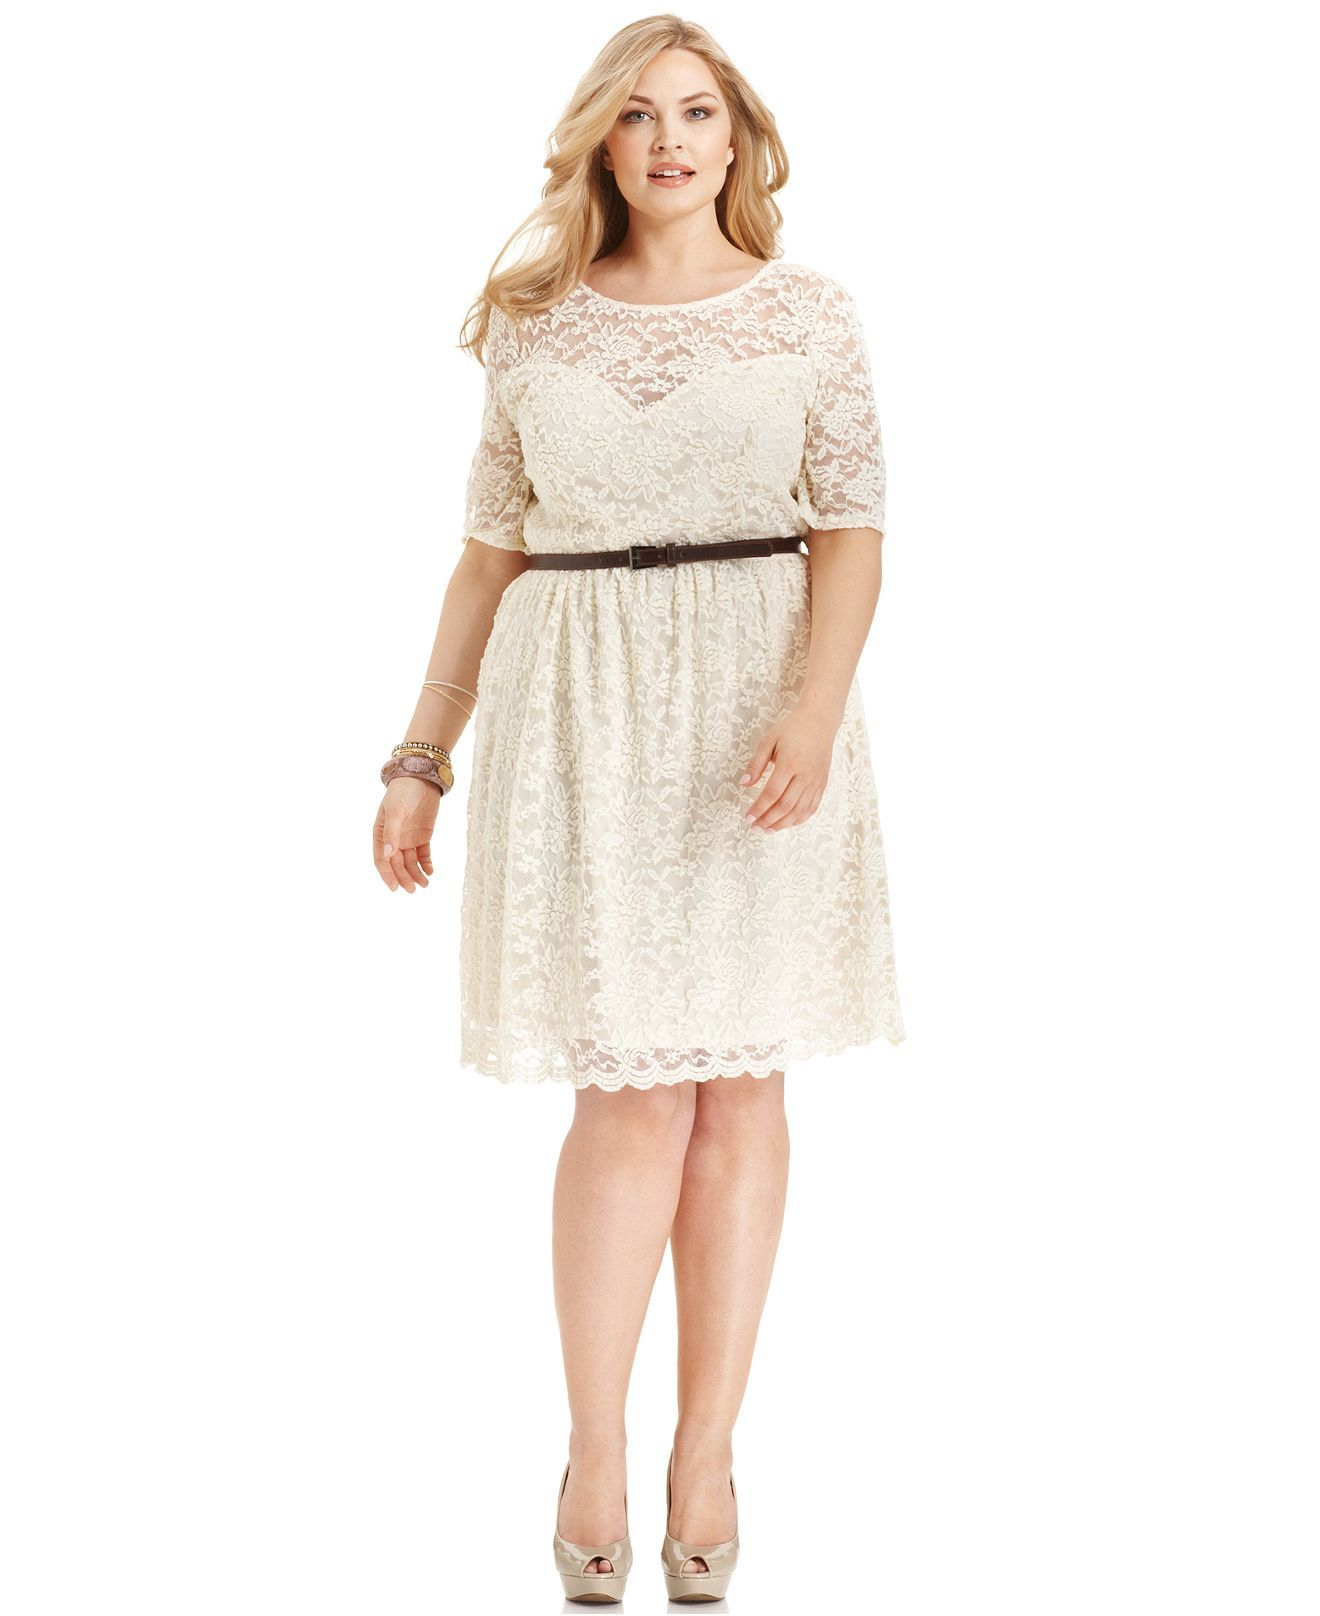 7d87b95b4dd  59.00 American Rag Plus Size Dress